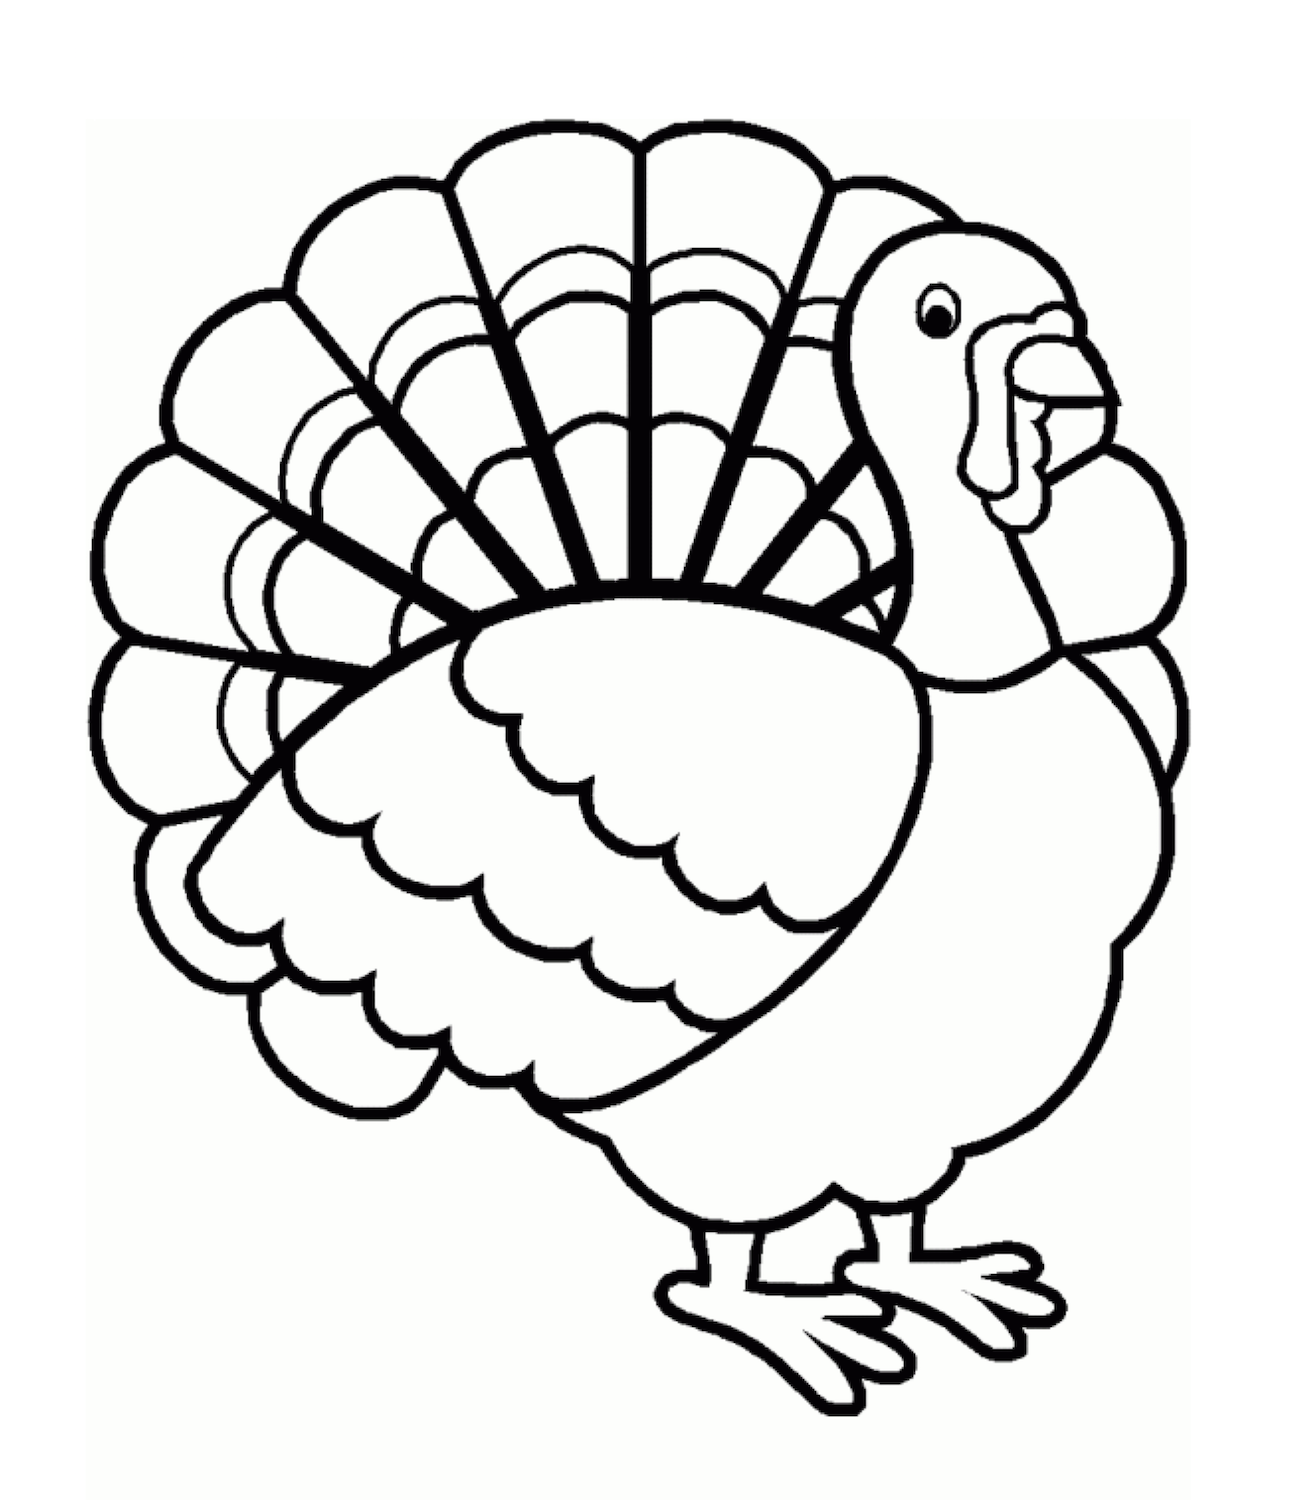 Thanksgiving Coloring Pages Turkey Coloring Pages Thanksgiving Coloring Pages Bird Coloring Pages